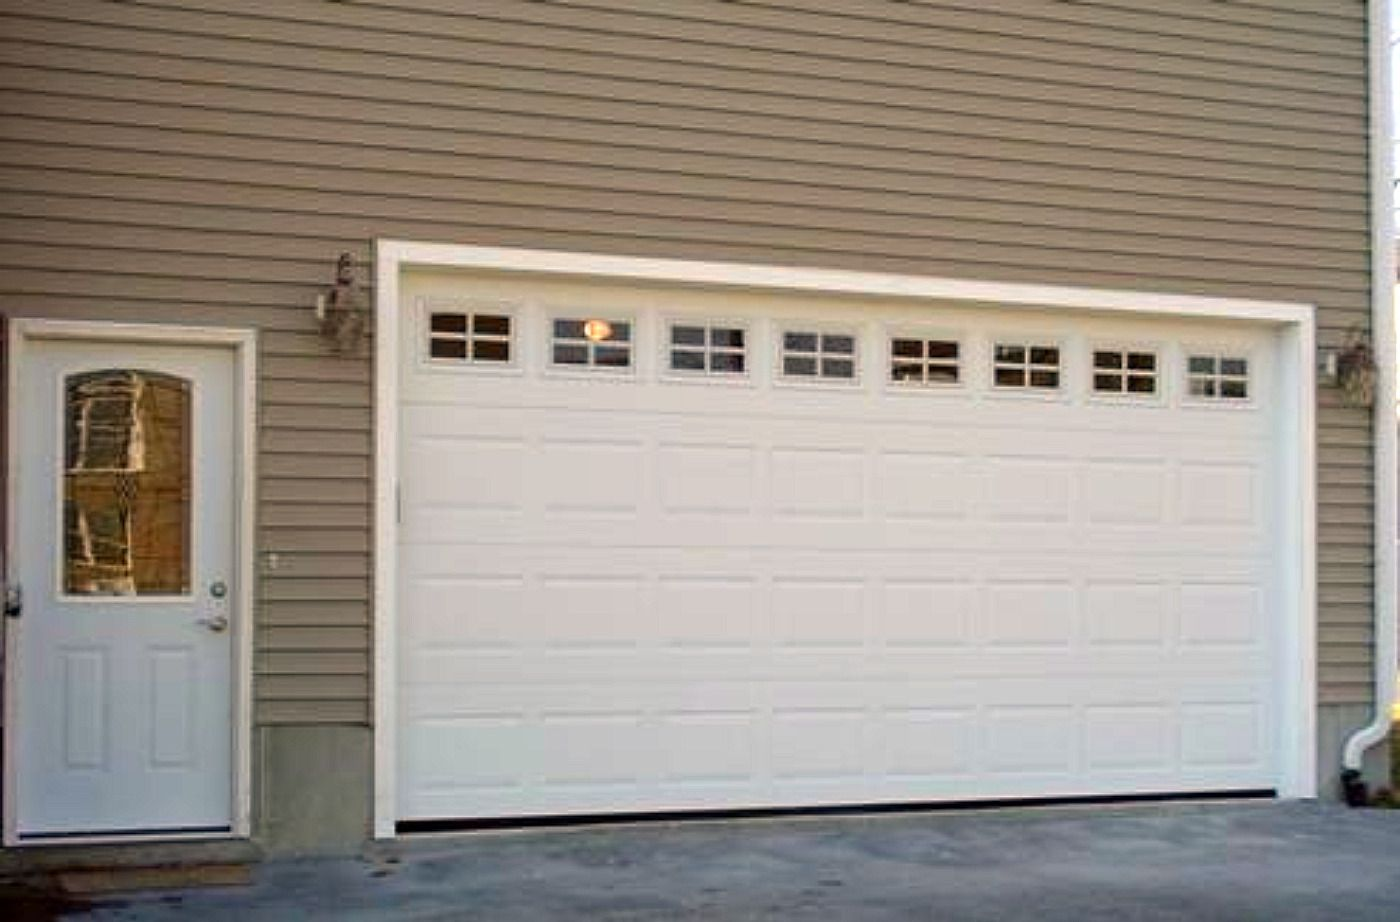 Garage Doors Gallery Residential Garage Doors Raised Panel Doors Steel Garage Door Garage Doors Door Repair Garage Door Repair